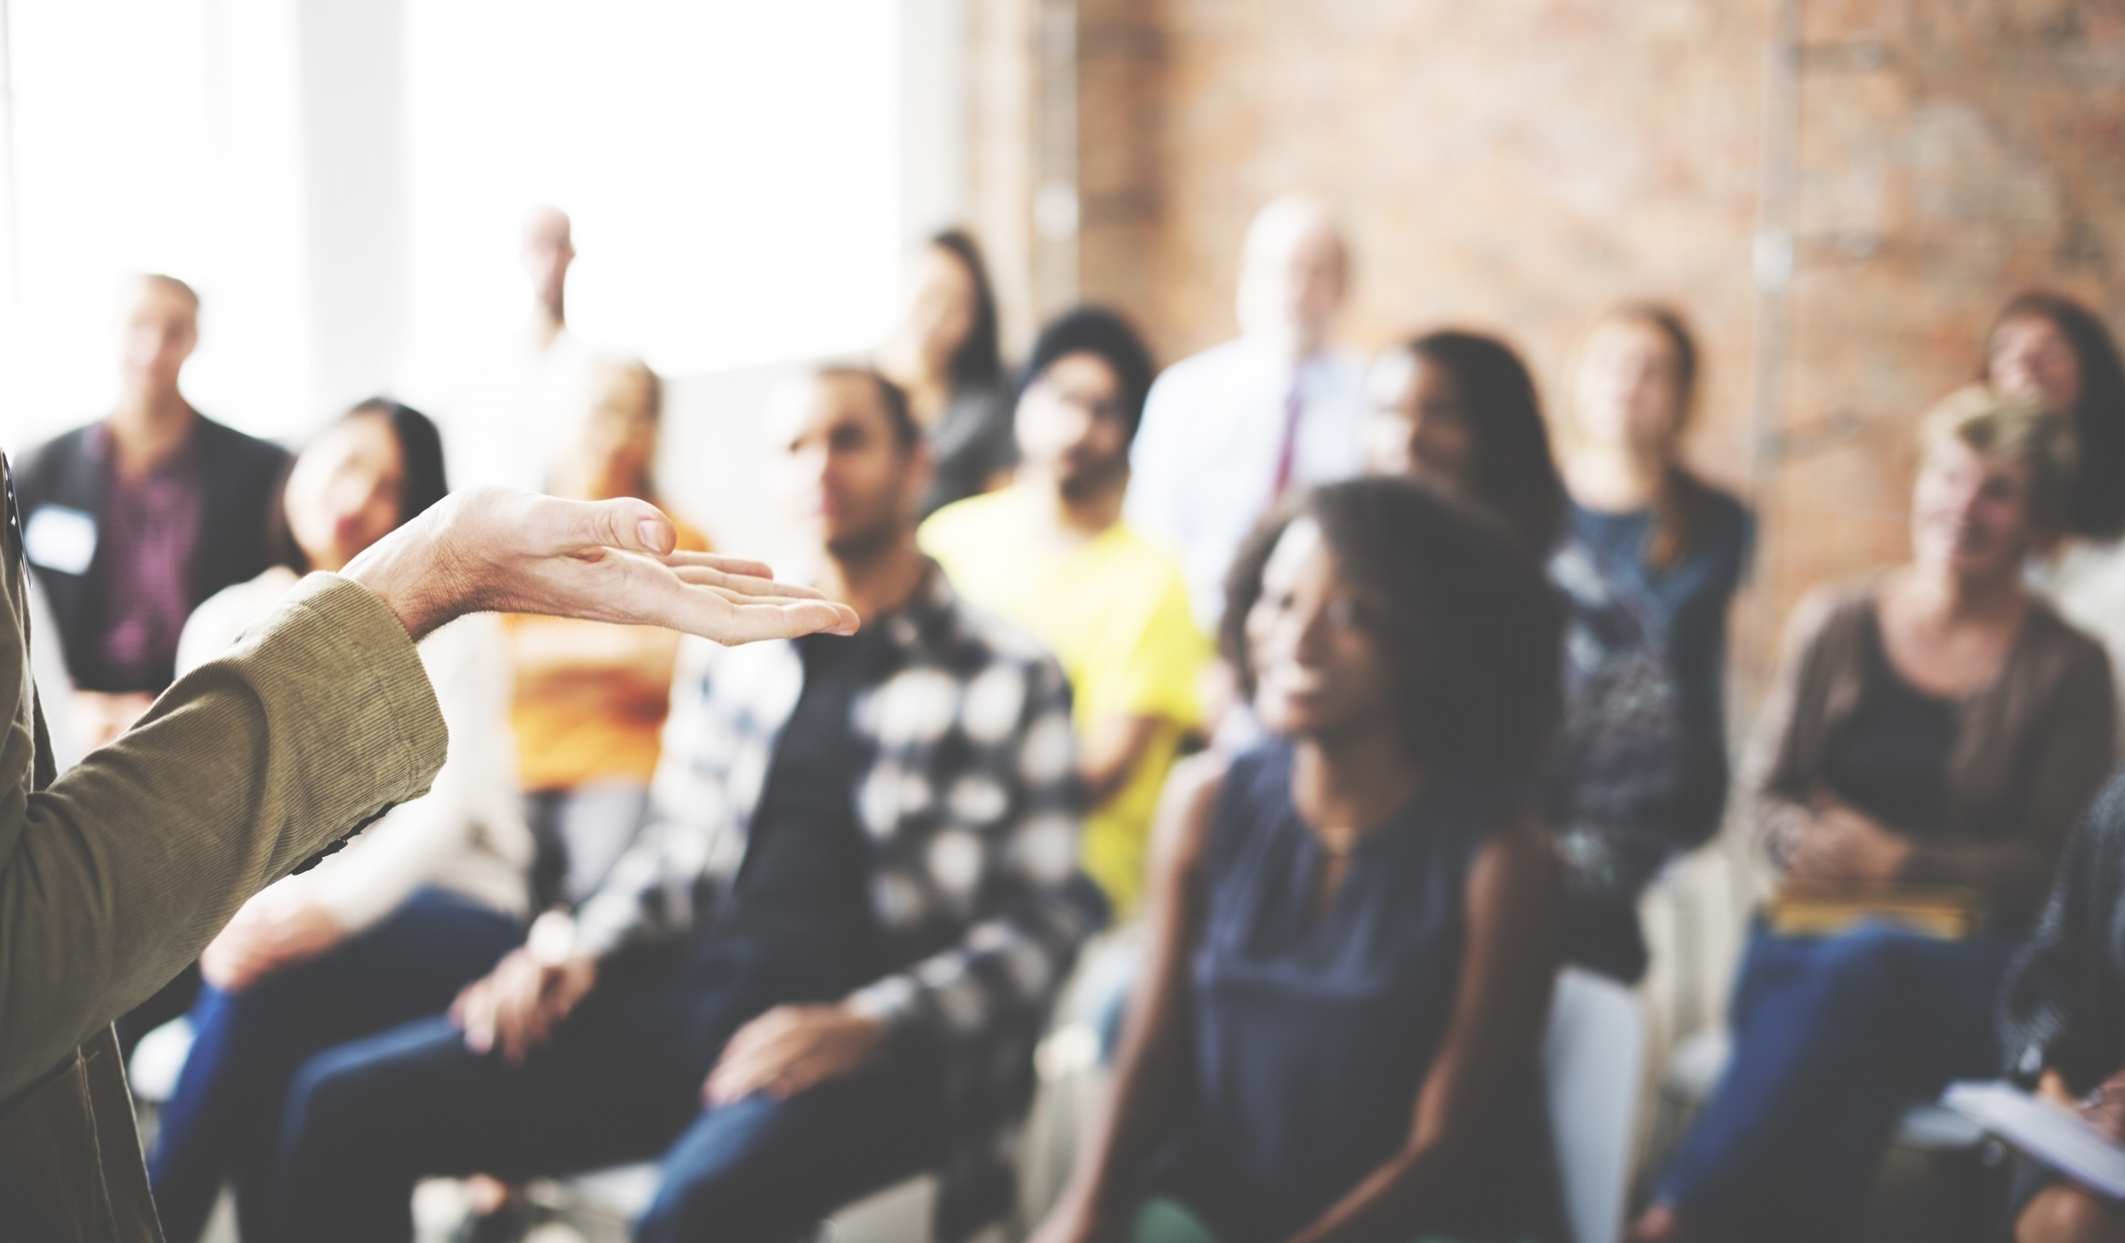 Woman speaking in front of diverse audience of adults